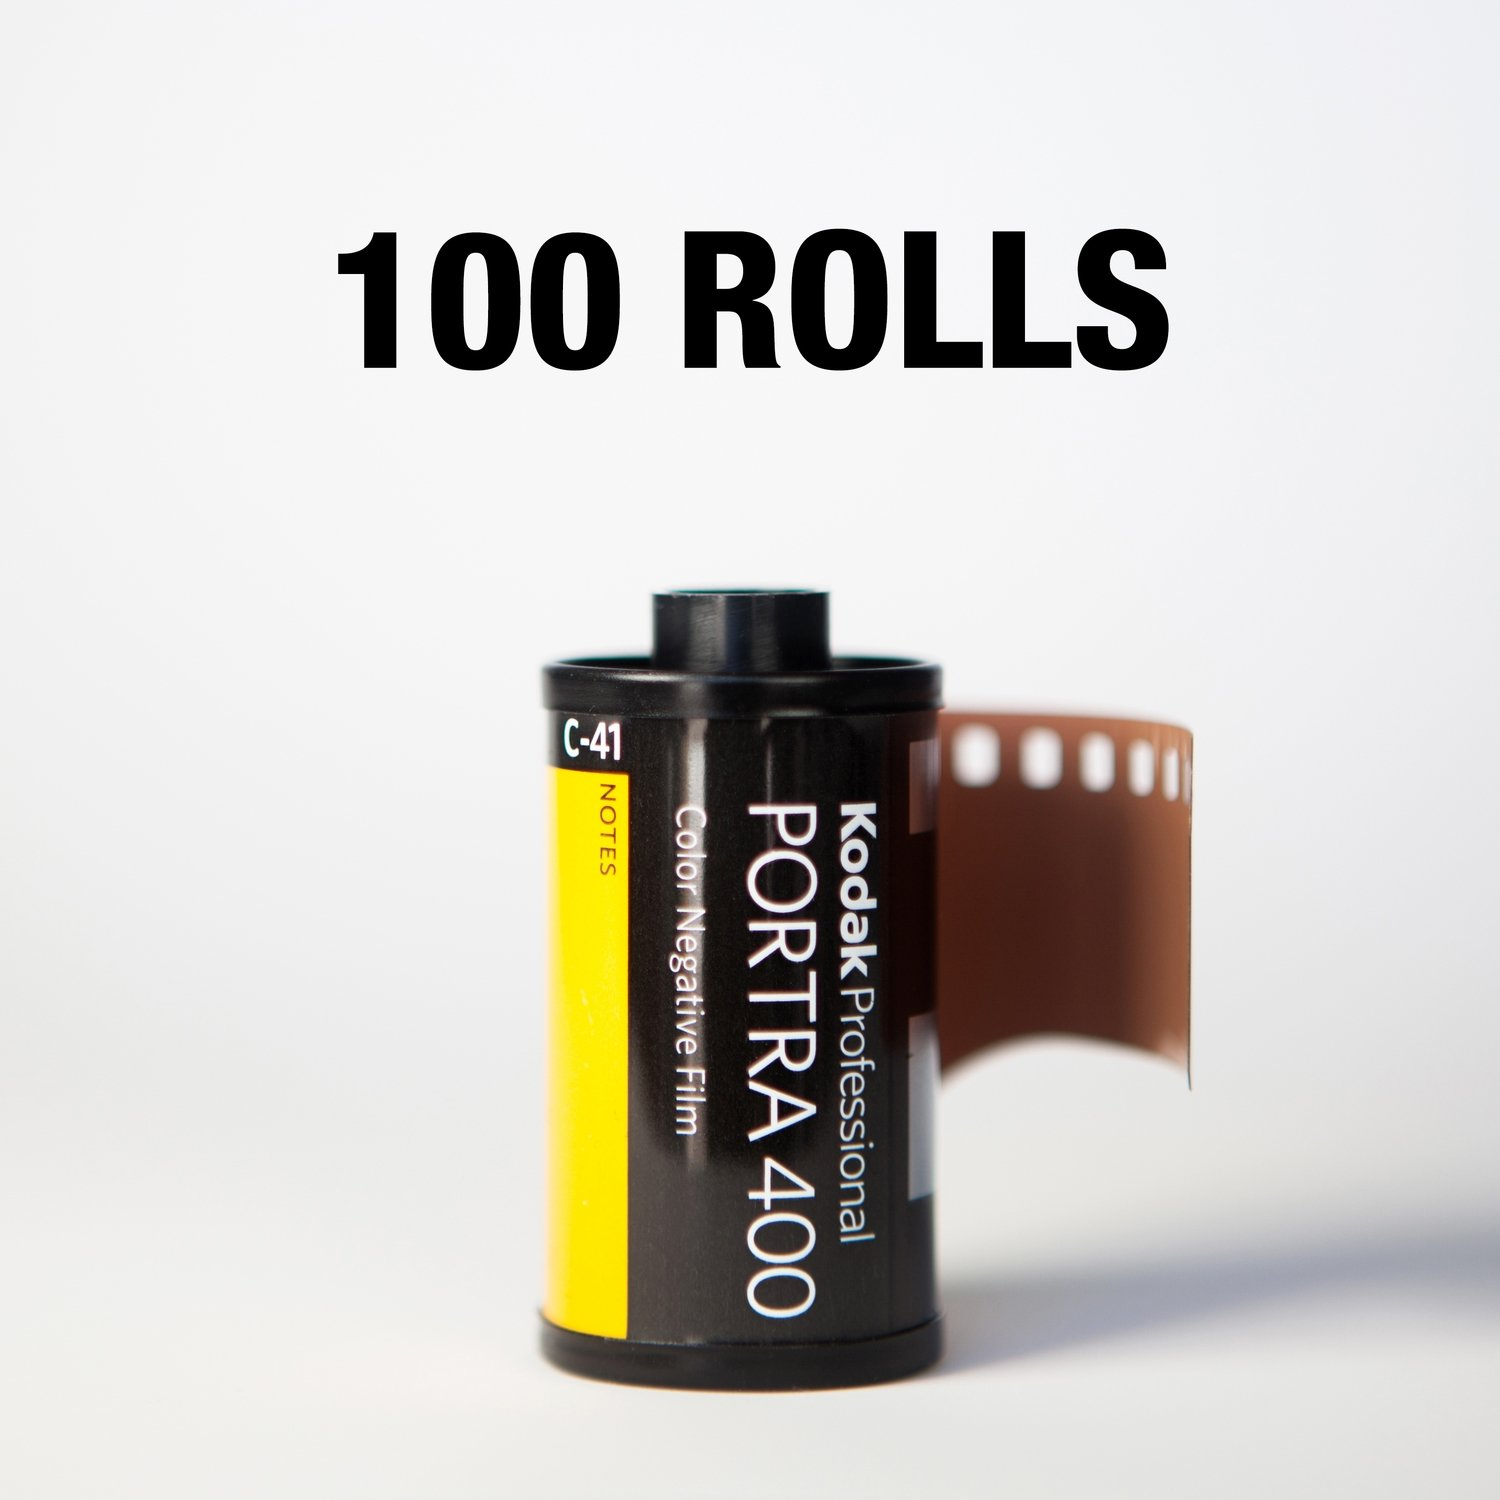 Kodak Portra 400 35mm 36 Exposures - 100 Rolls ($7.49/roll)